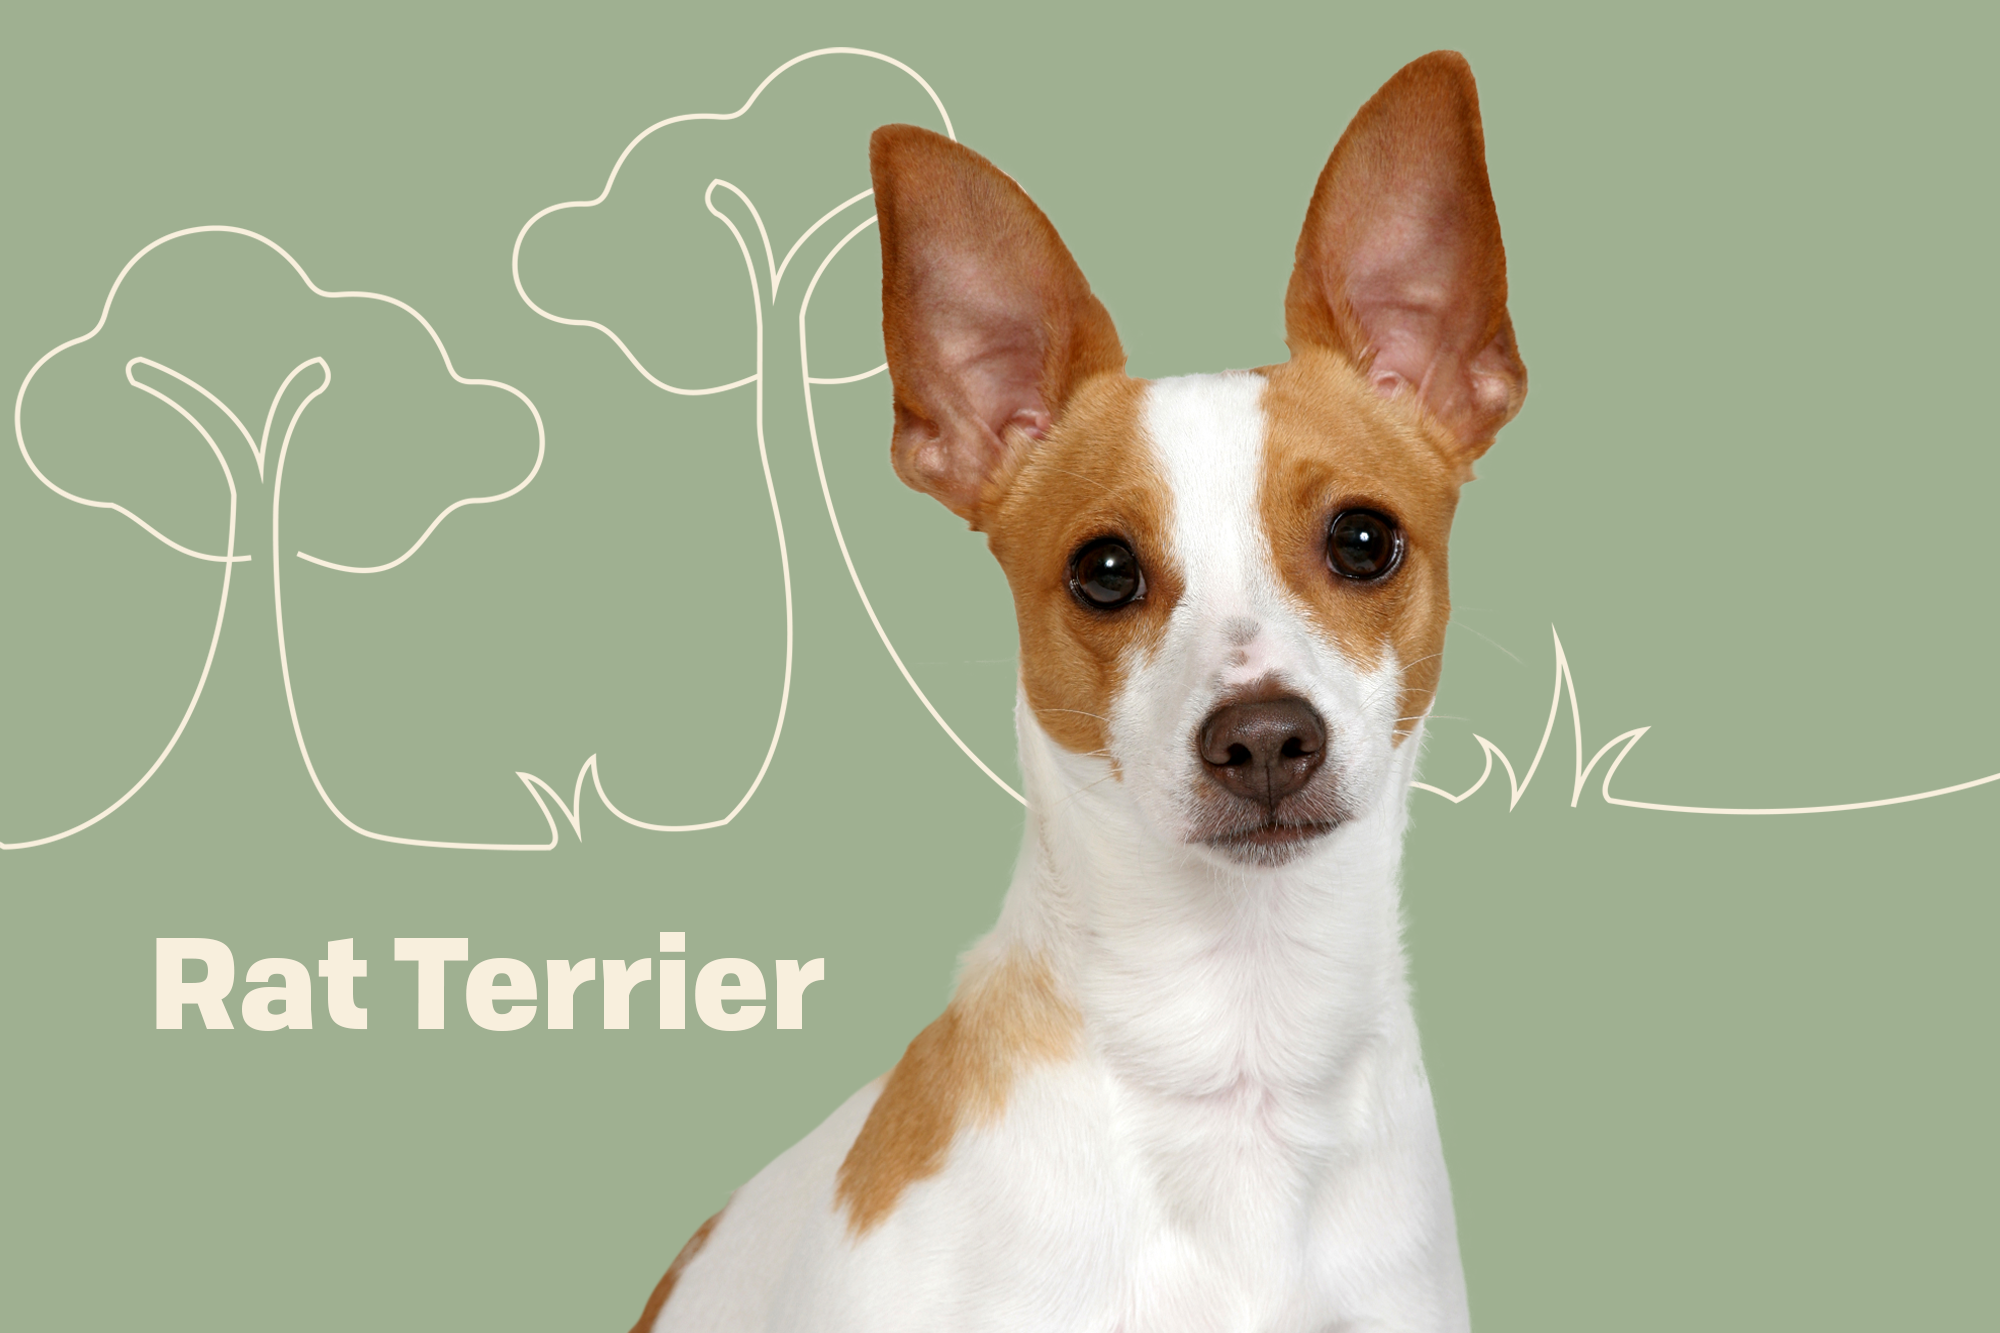 Rat Terrier Breed Photo